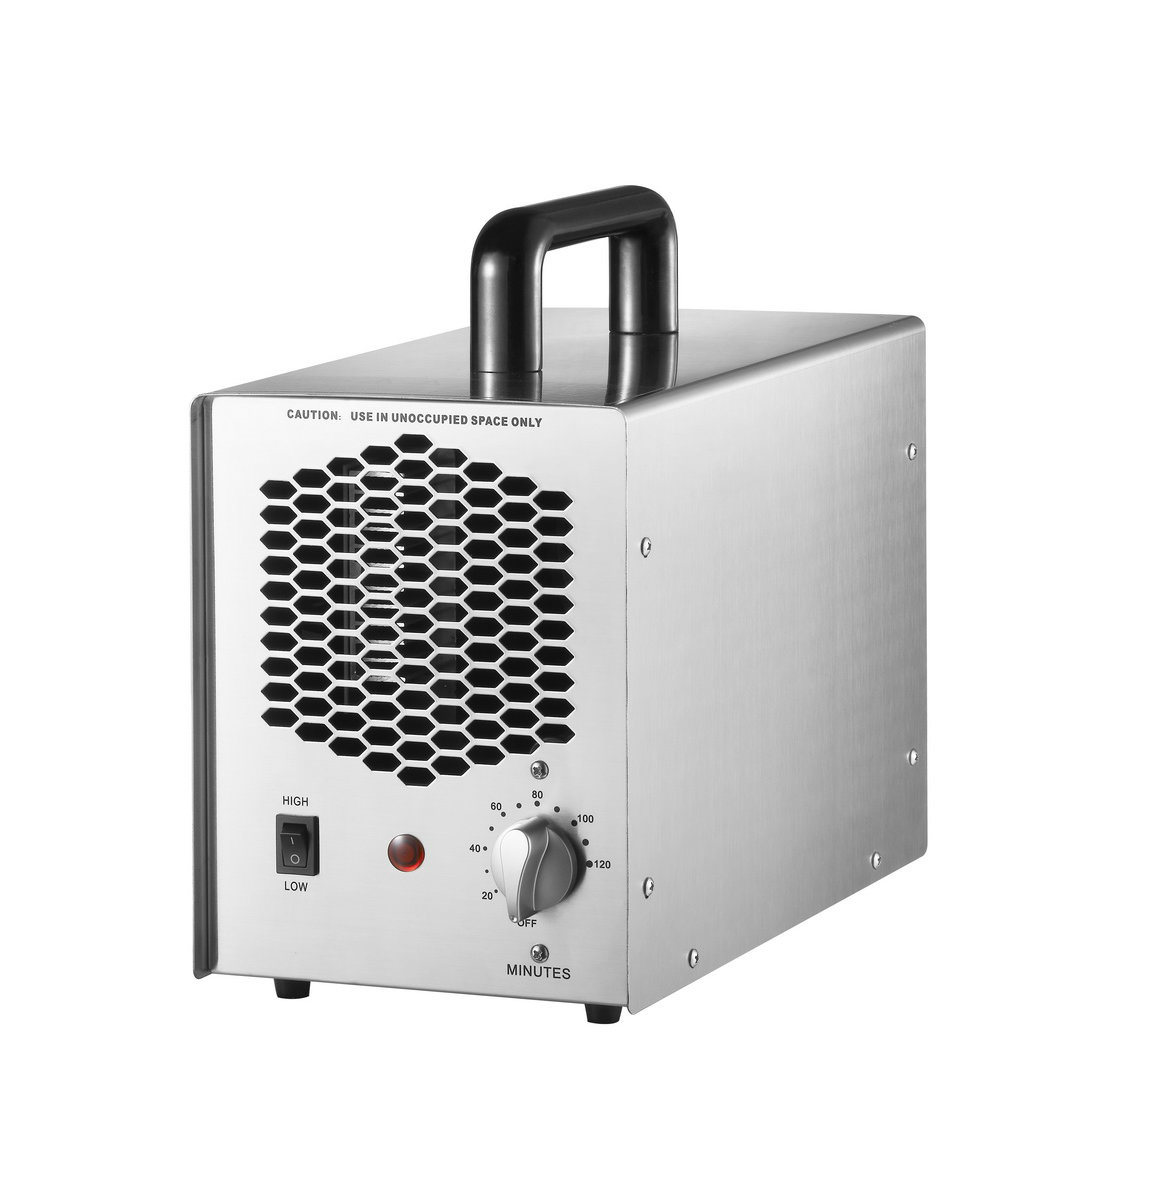 14G Powerful Ozone Purifier After Flood and Fire